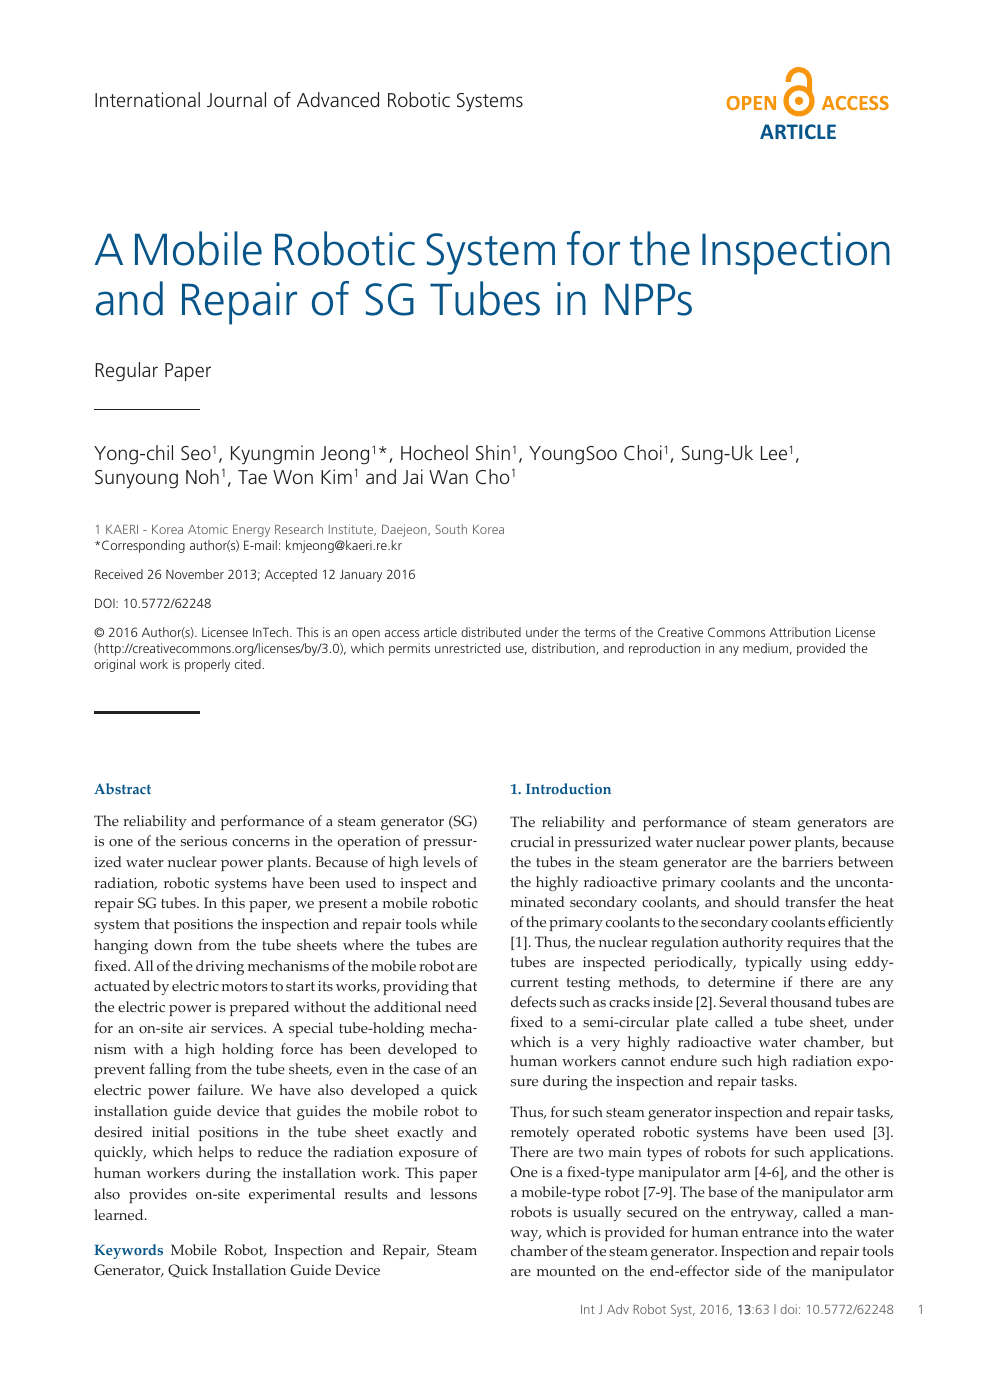 A Mobile Robotic System for the Inspection and Repair of SG